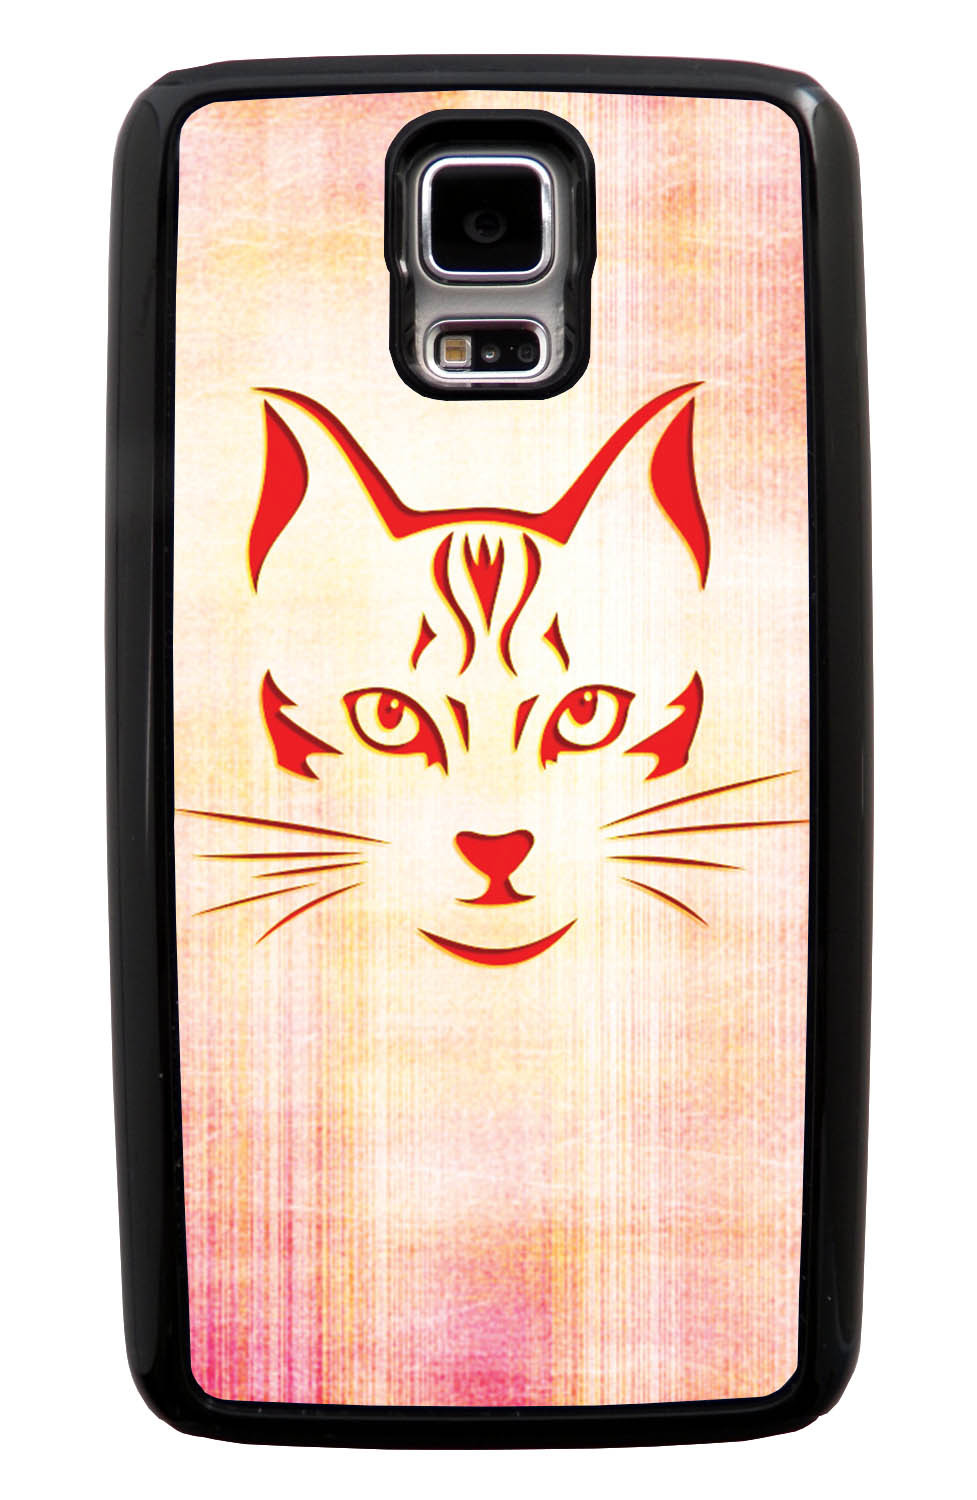 Samsung Galaxy S5 / SV Cat Case - Red Cat Face on Light Orange-Pink - Simple Stencils Cutout - Black Tough Hybrid Case